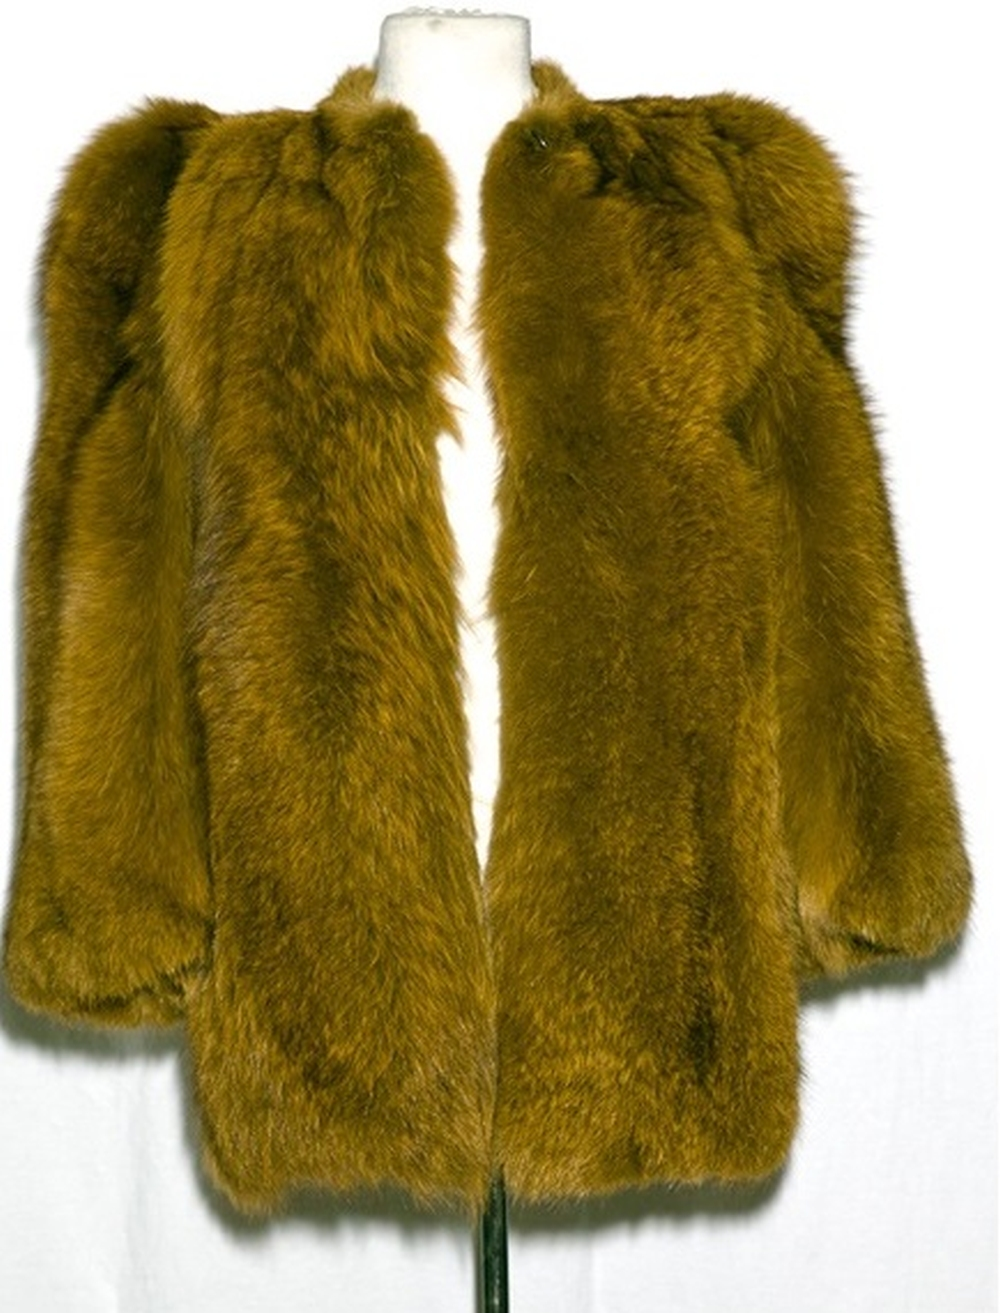 Lot 50 - A Vintage Yves Saint Laurent Coat Gifted By Elton John To Maxine Taupin